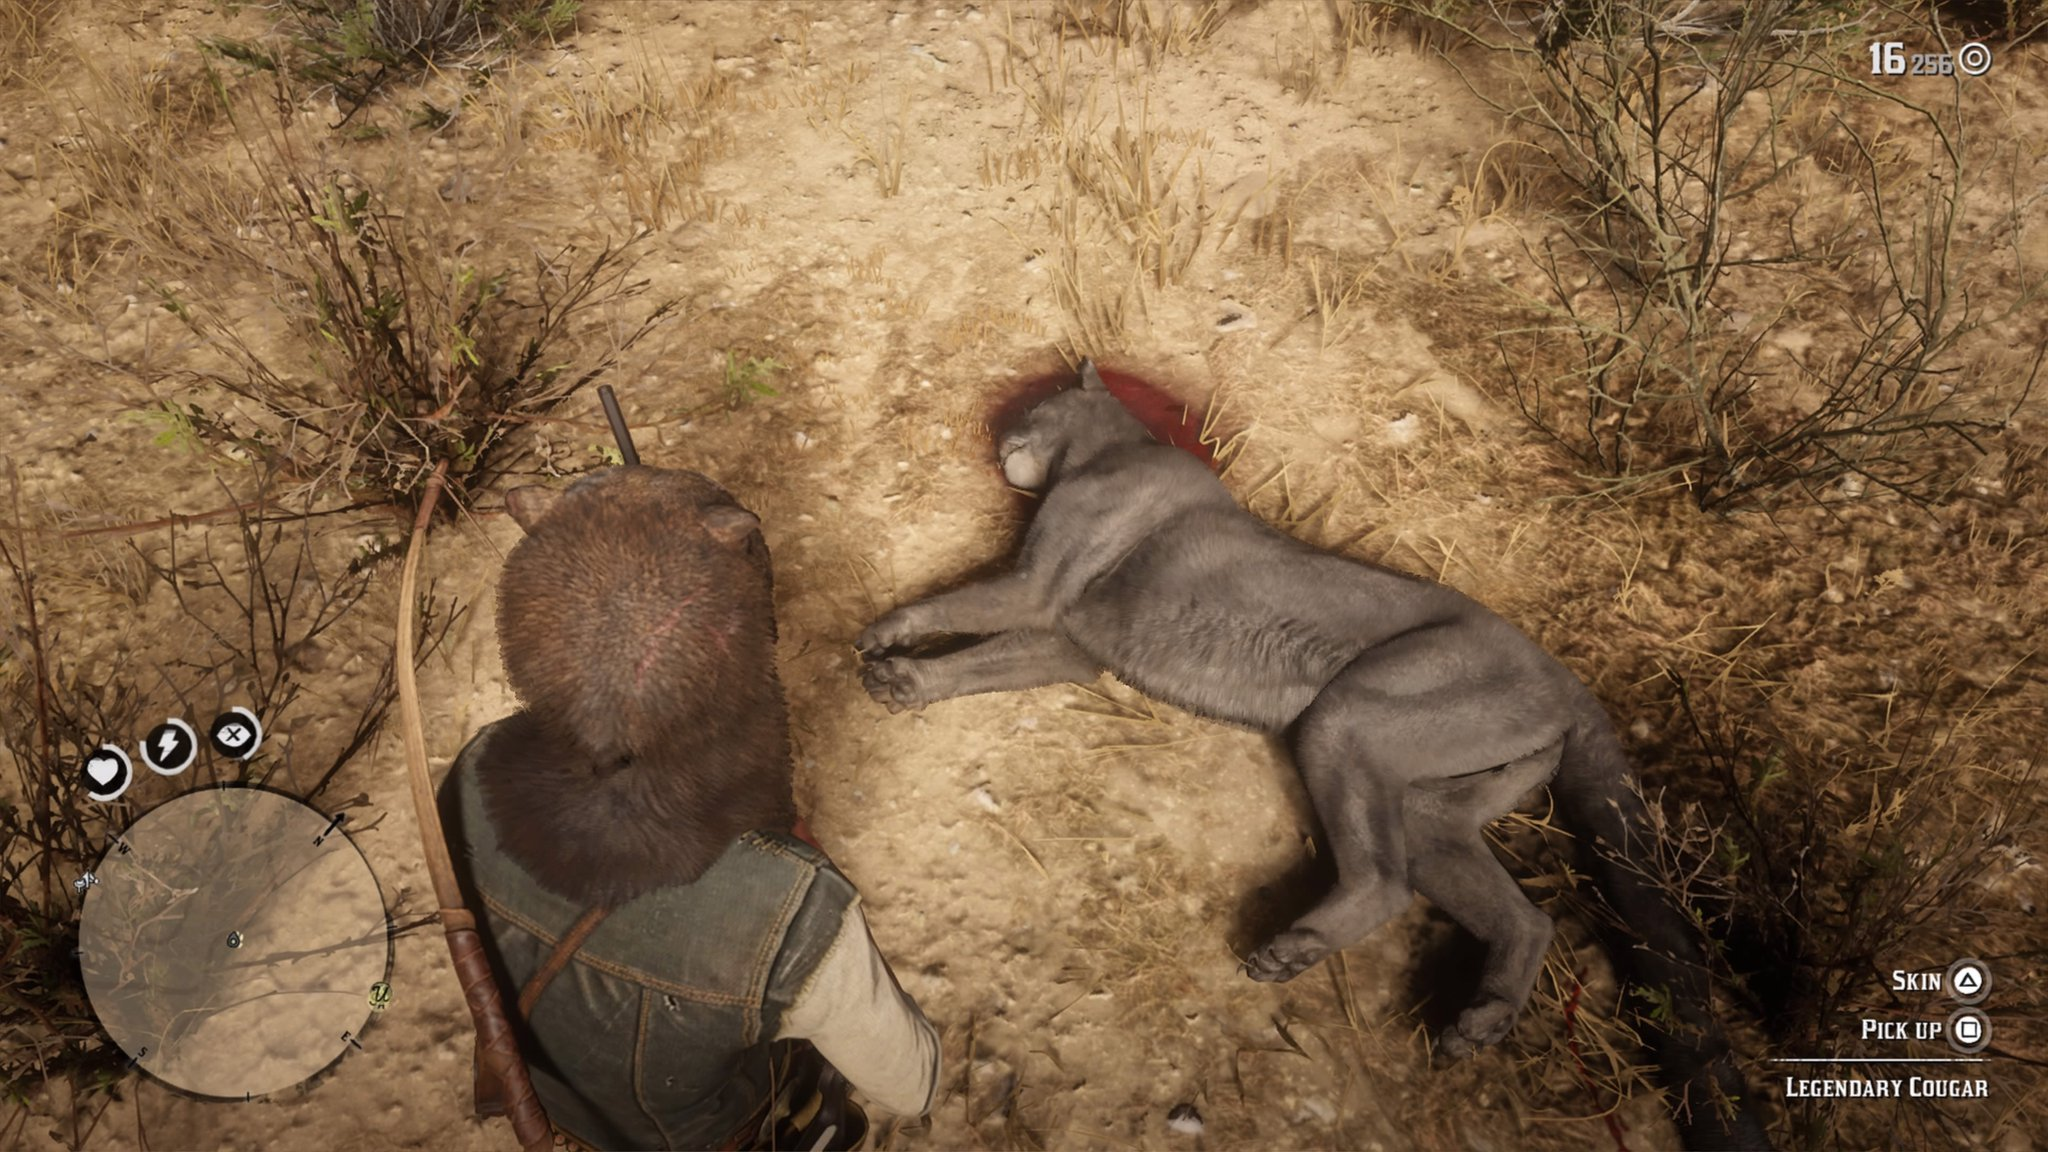 Red Dead Redemption 2 Legendary Cougar Location - How to Get the